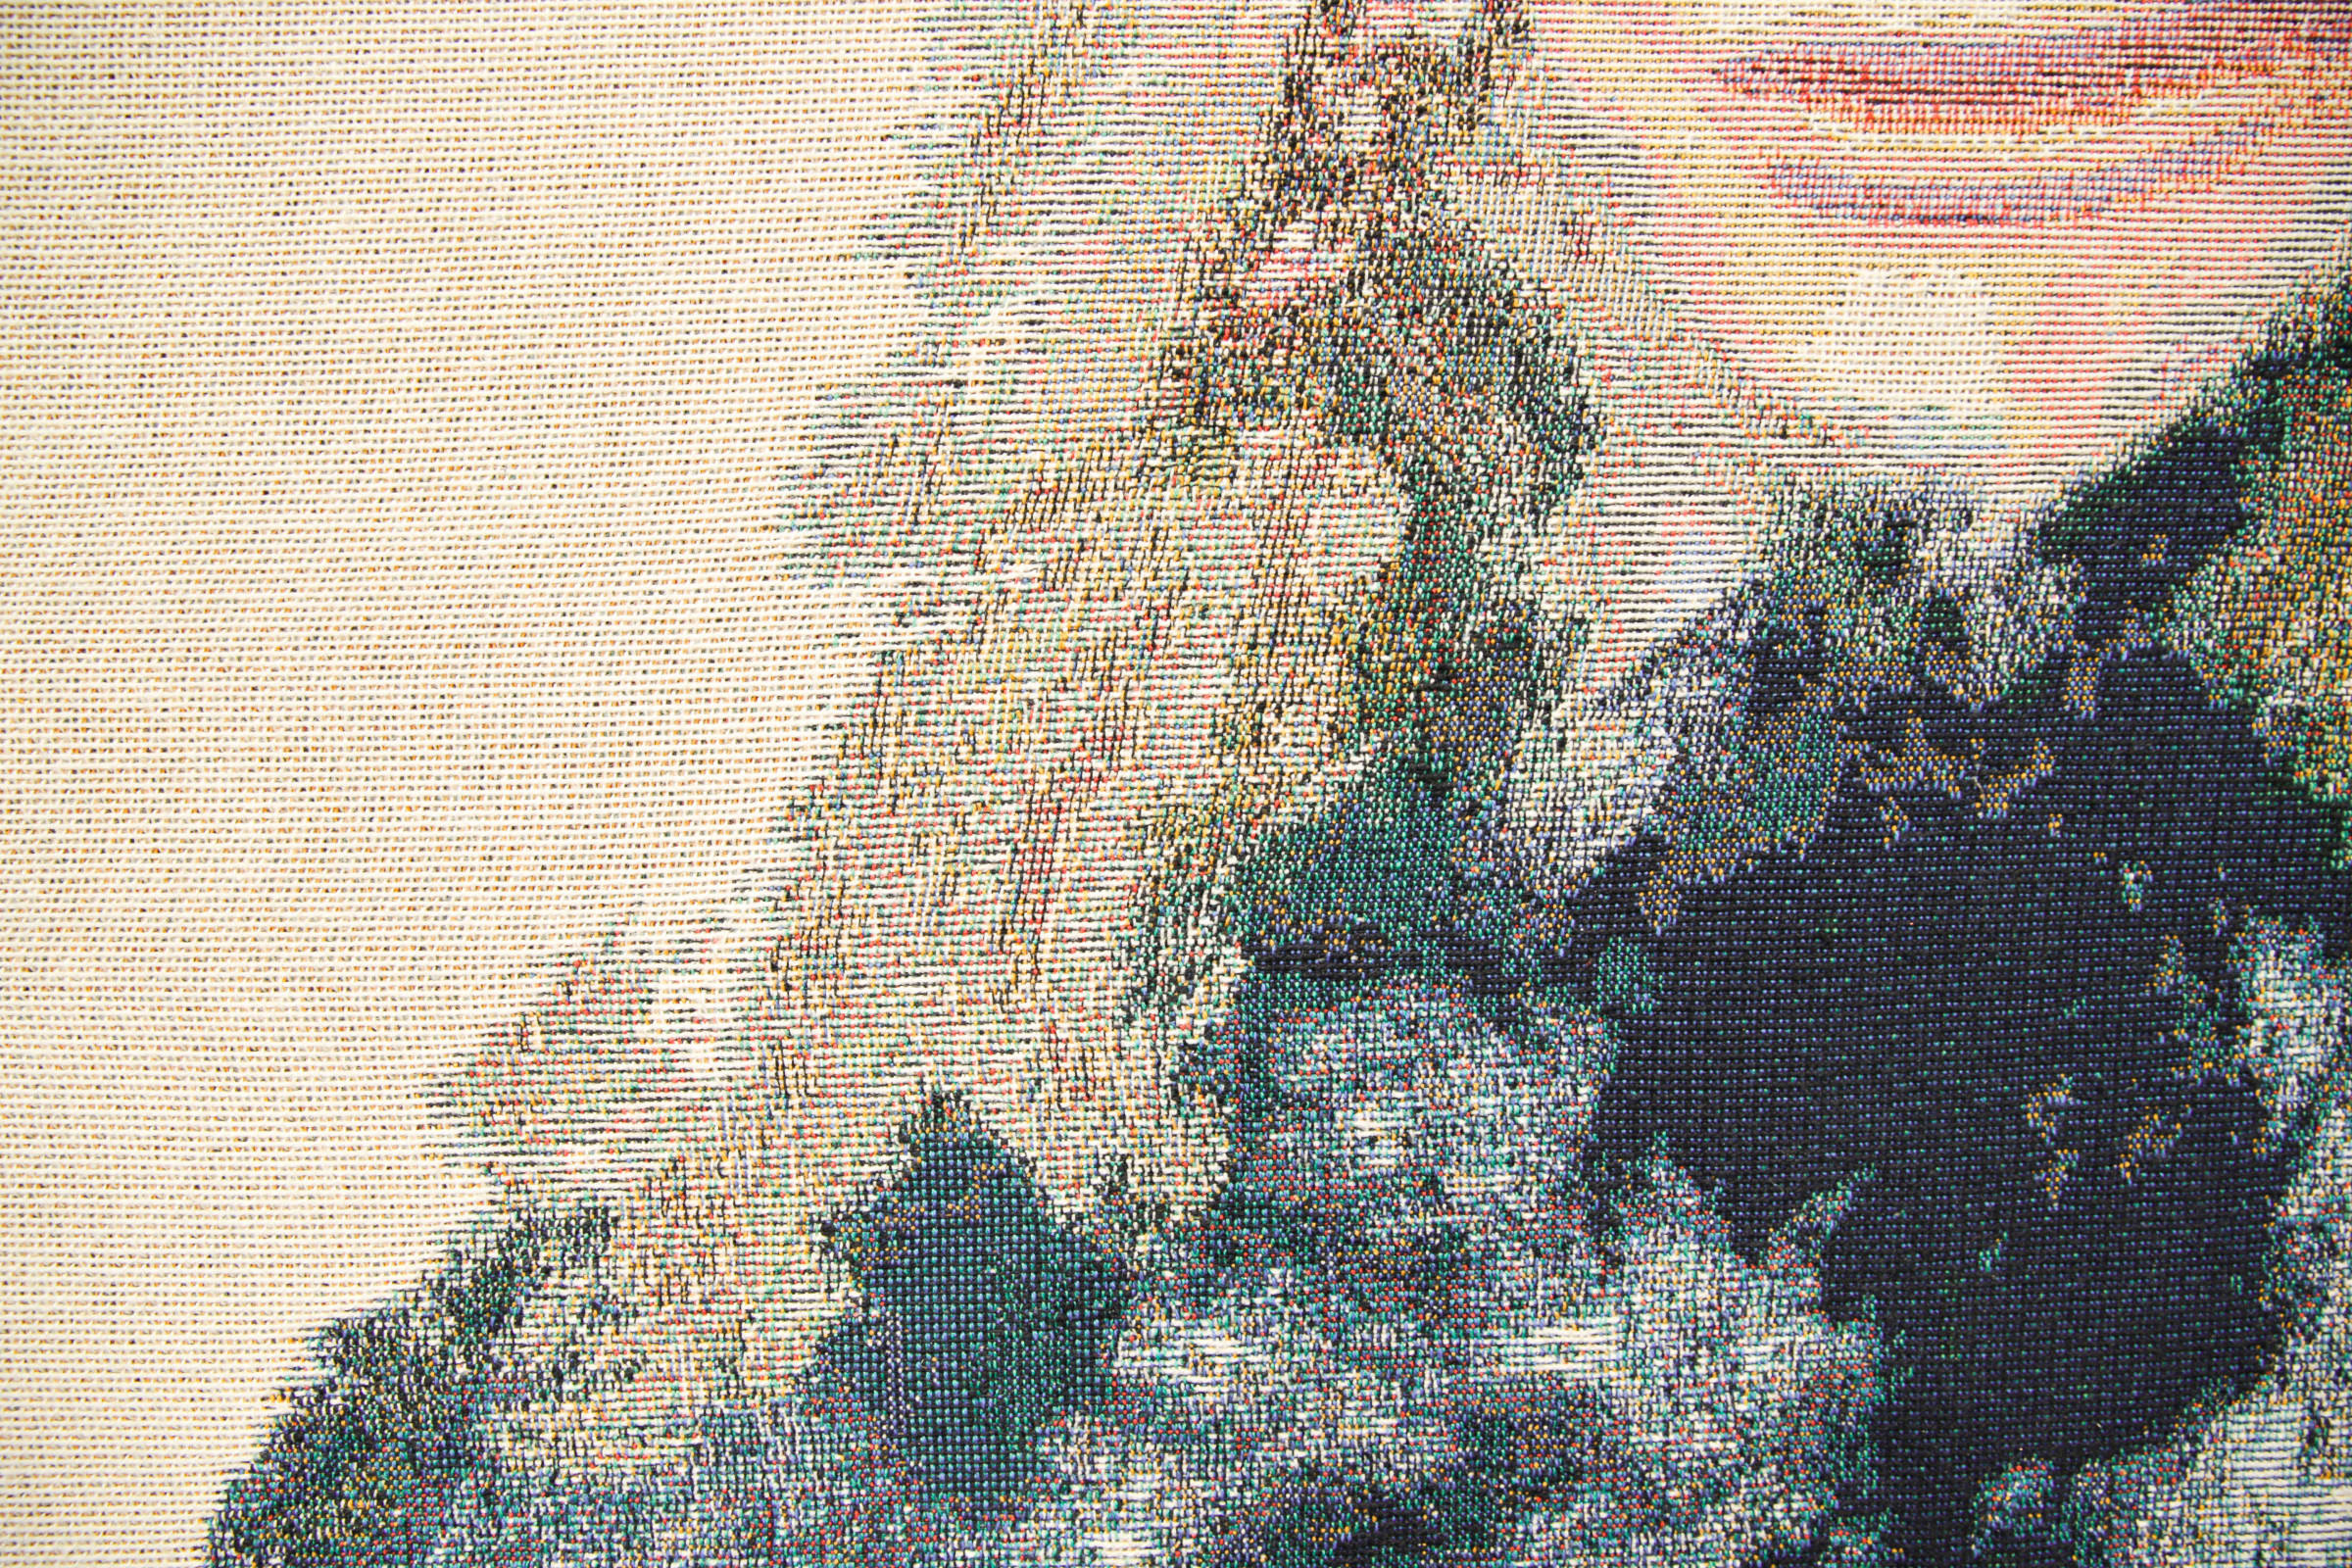 Immortalising the digital generation in tapestry